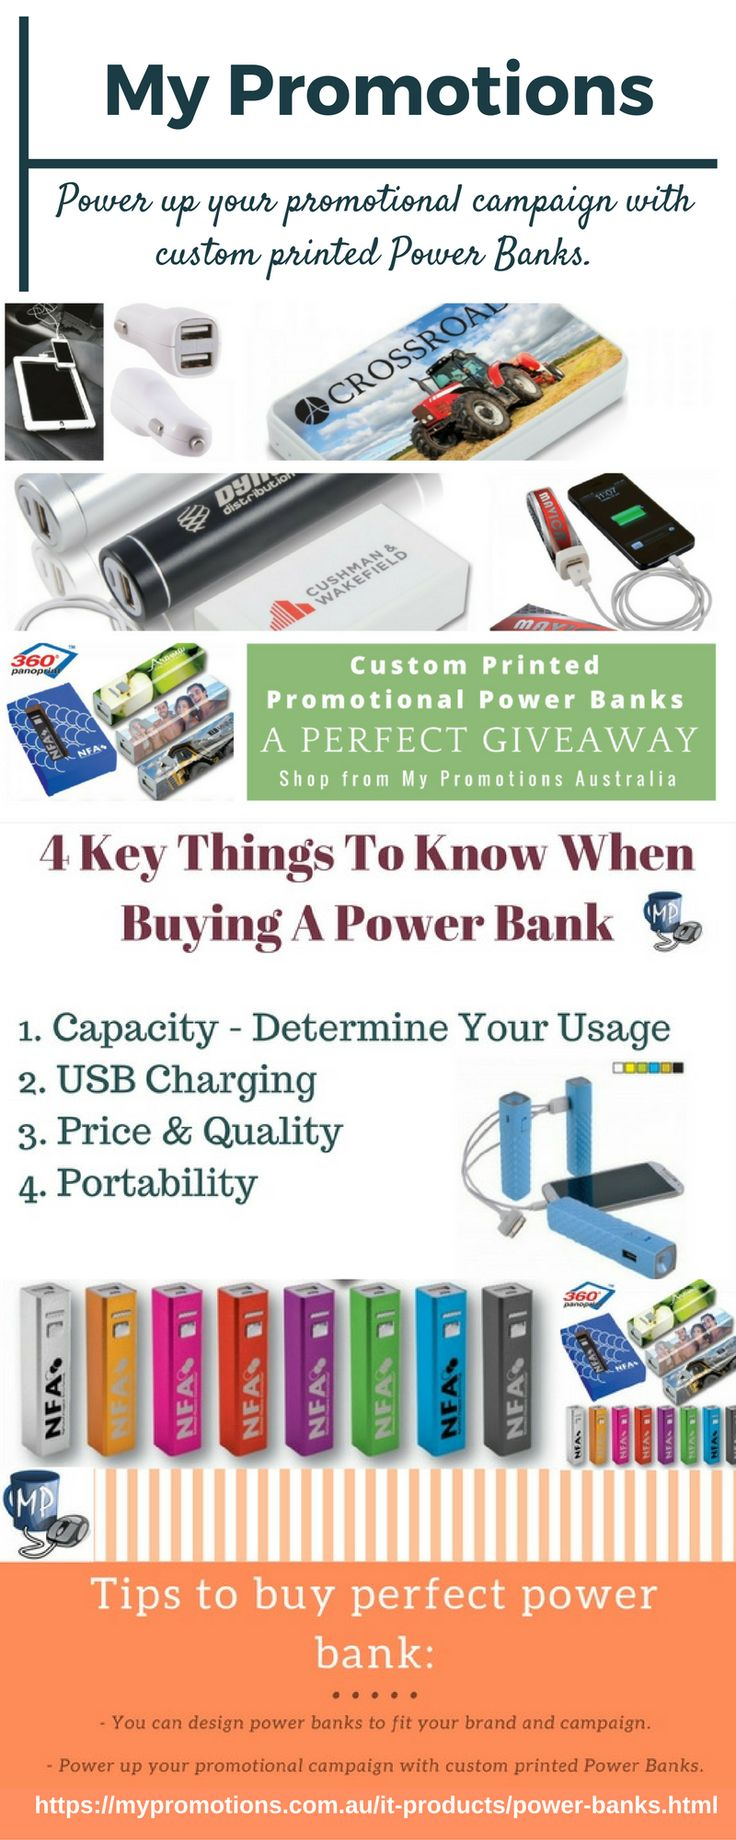 Brand awareness is one of the best things you can do to promote your business. Promote your brand with promotional power banks custom printed with companies' logos and messages becomes the great corporate gifts and promotional products. To get more information about personalised power banks, look at this infographic or visit: Mypromotions.com.au